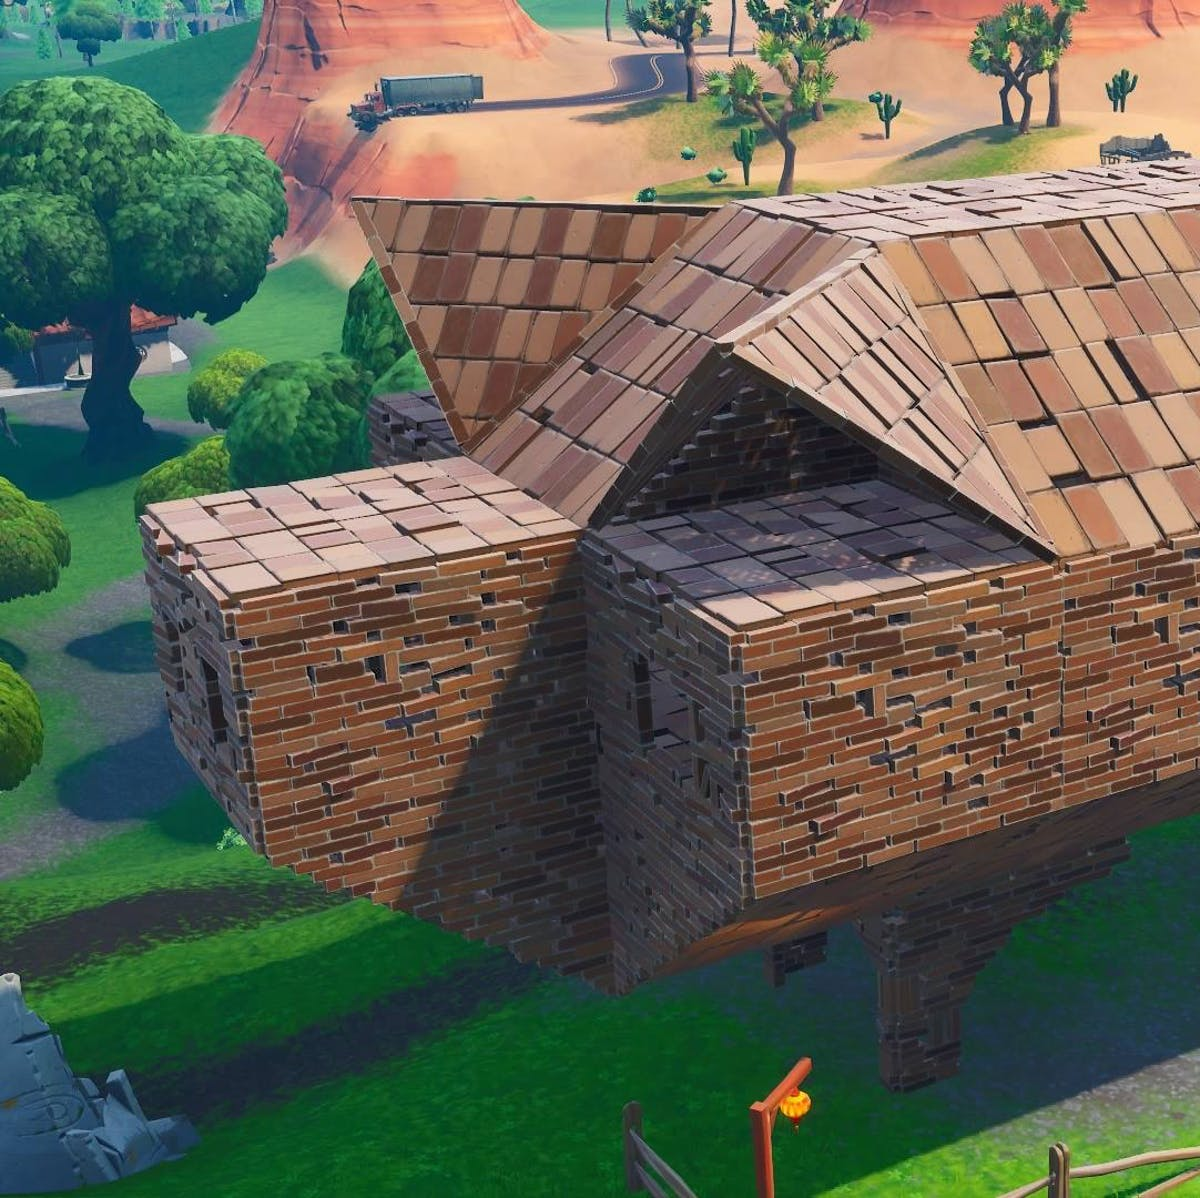 fortnite wooden rabbit stone pig and metal llama locations and map inverse - fortnite visit a wooden rabbit stone pig